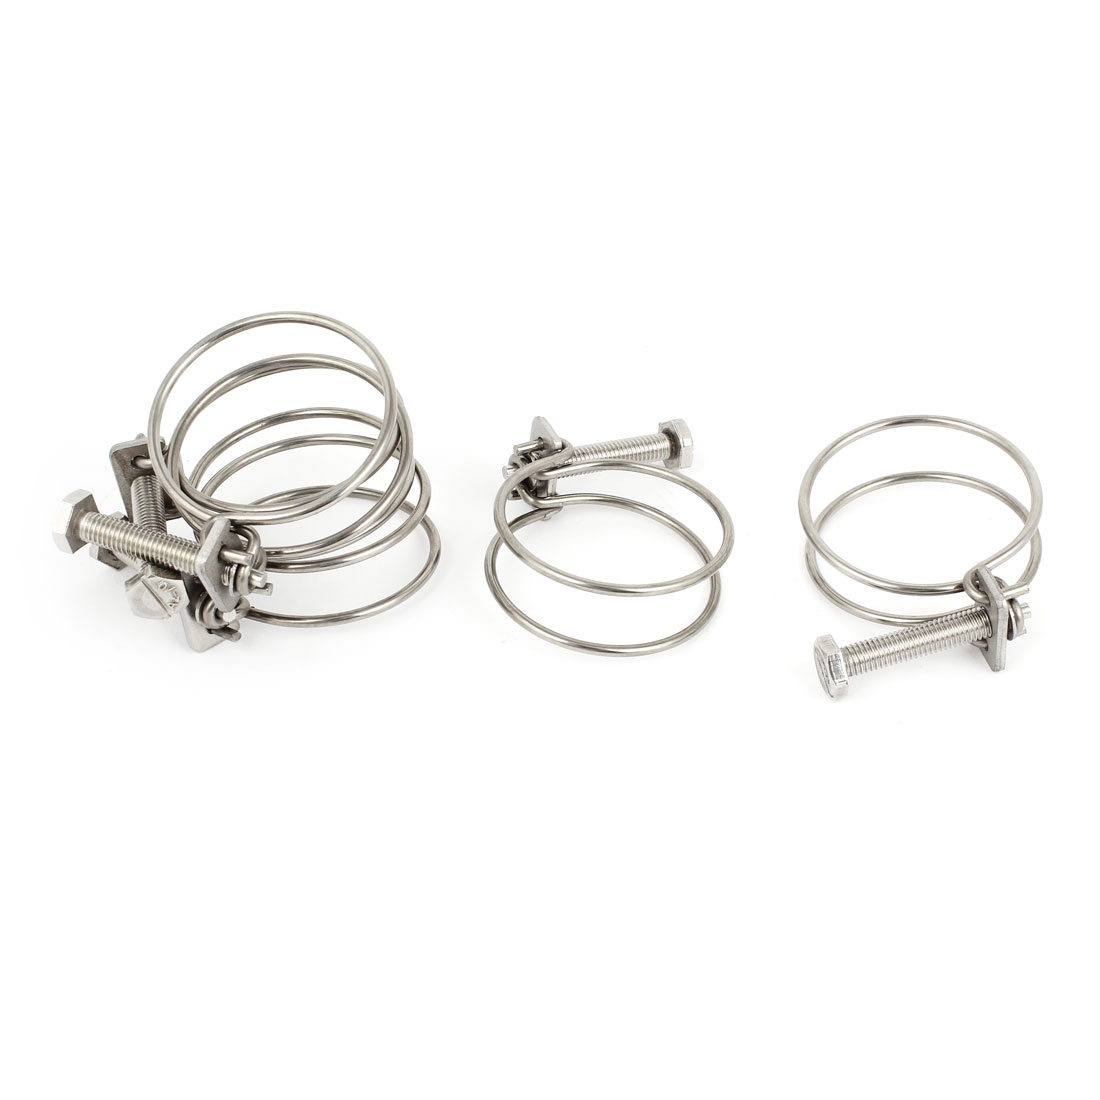 5 Pcs 54mmx3mm Double Wire Adjustable Hose Clamps Hoops Silver Tone